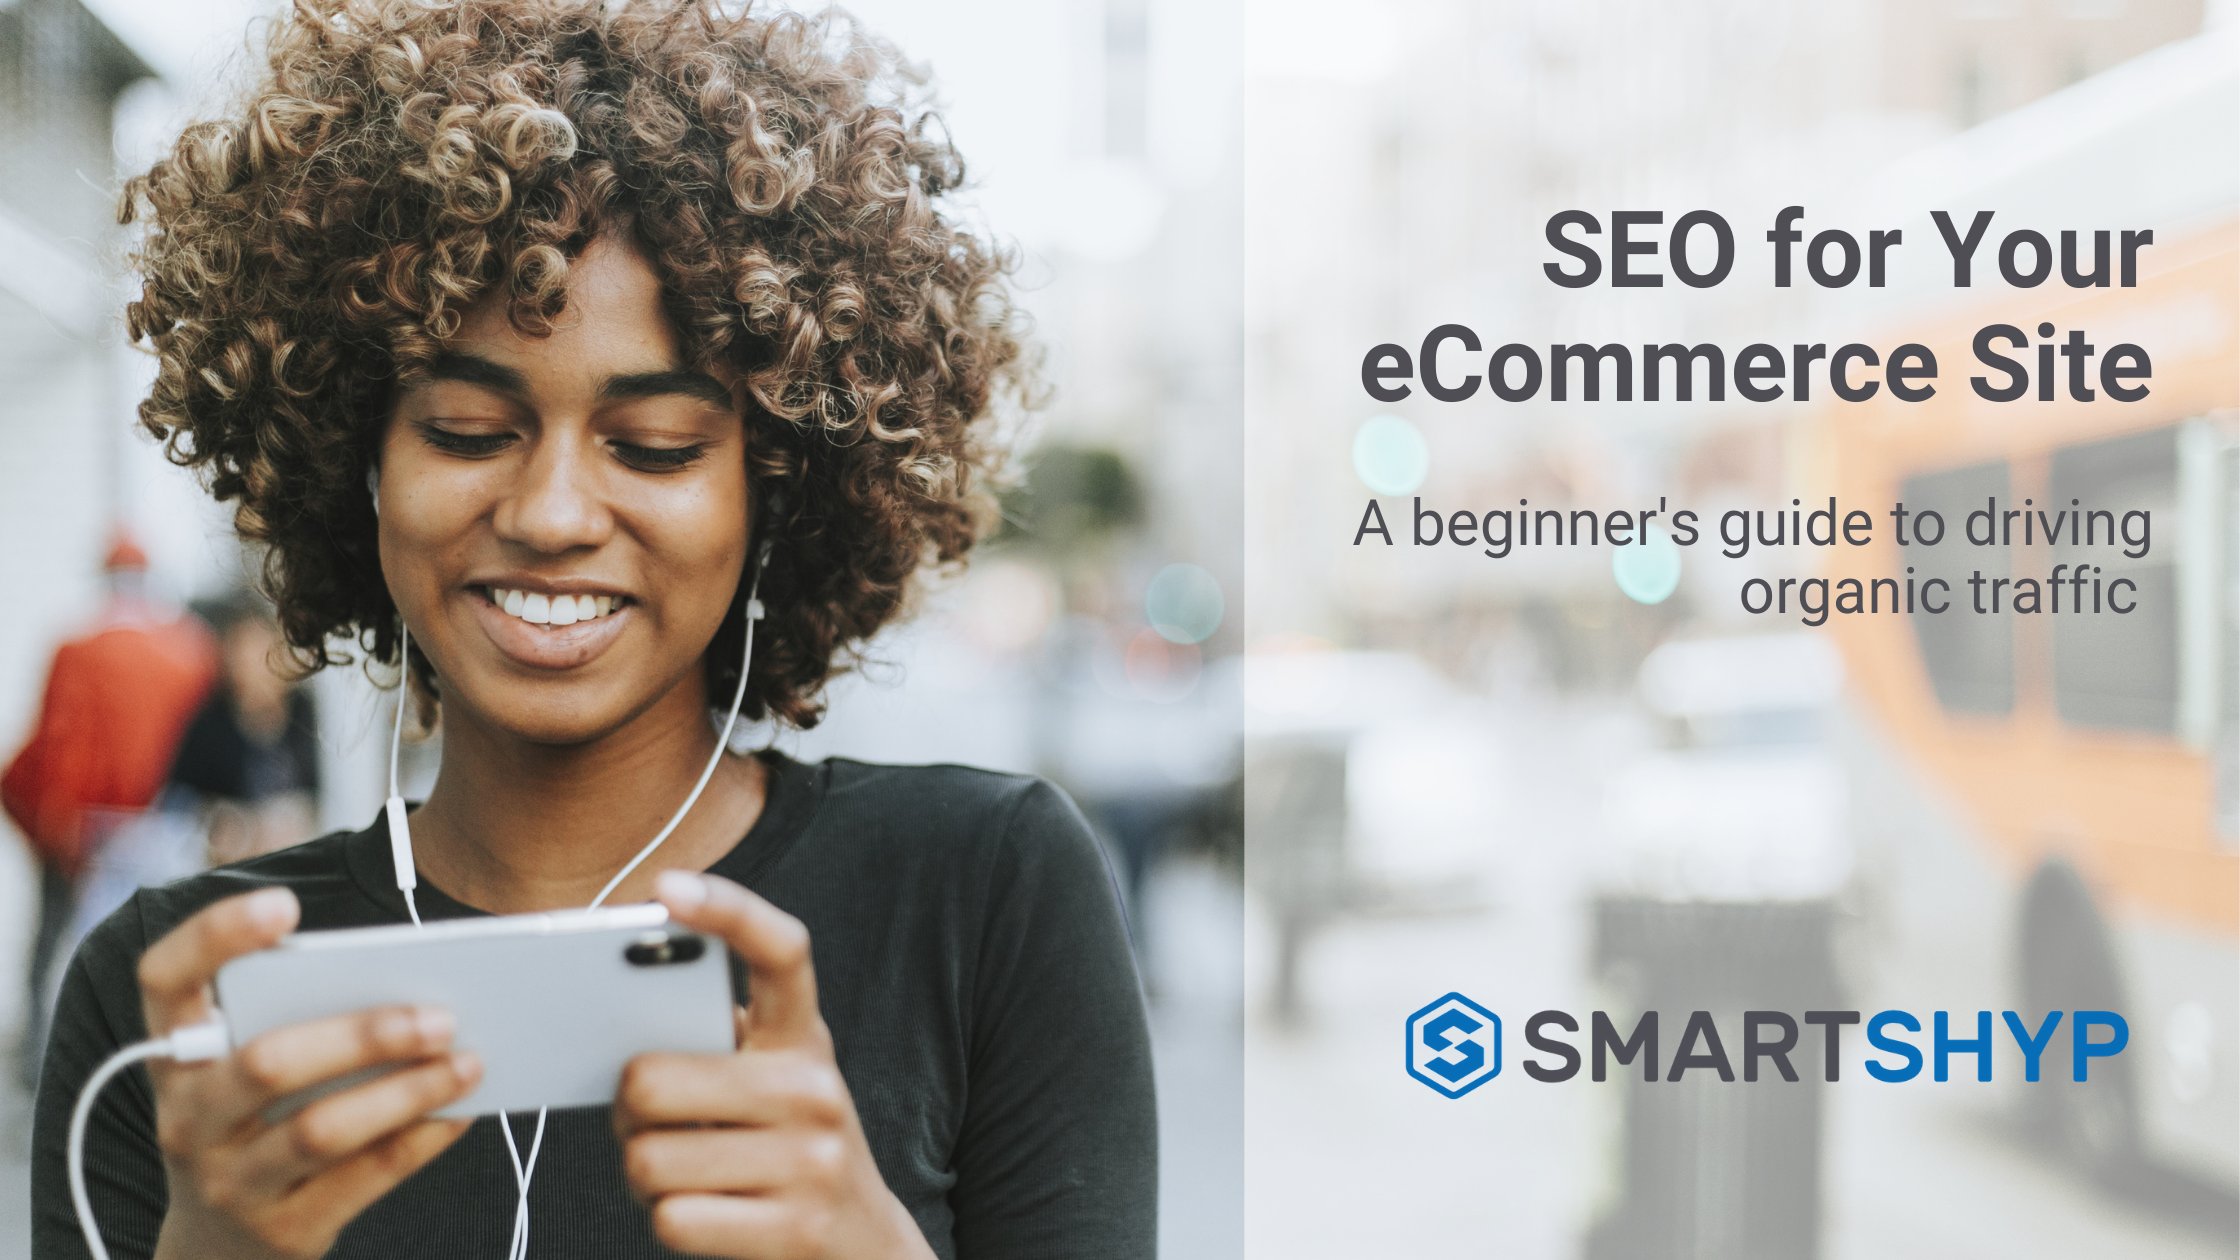 seo-for-your-ecommerce-site